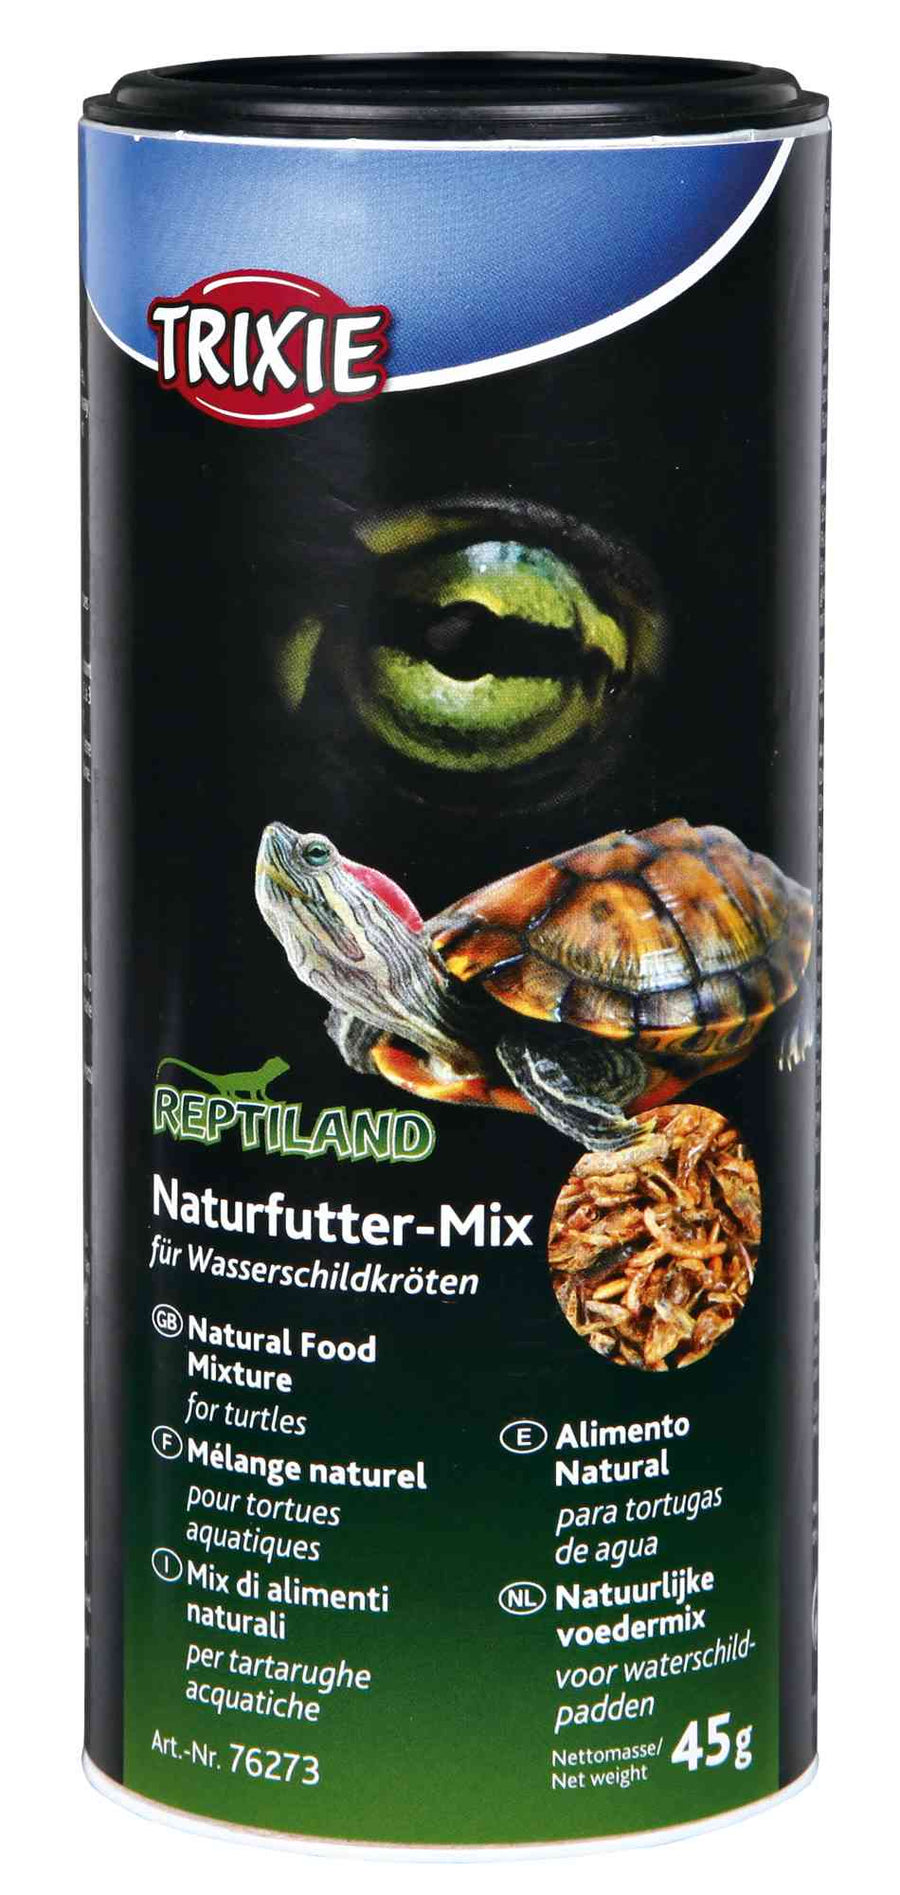 Natural Food Mixture for Water-Turtles